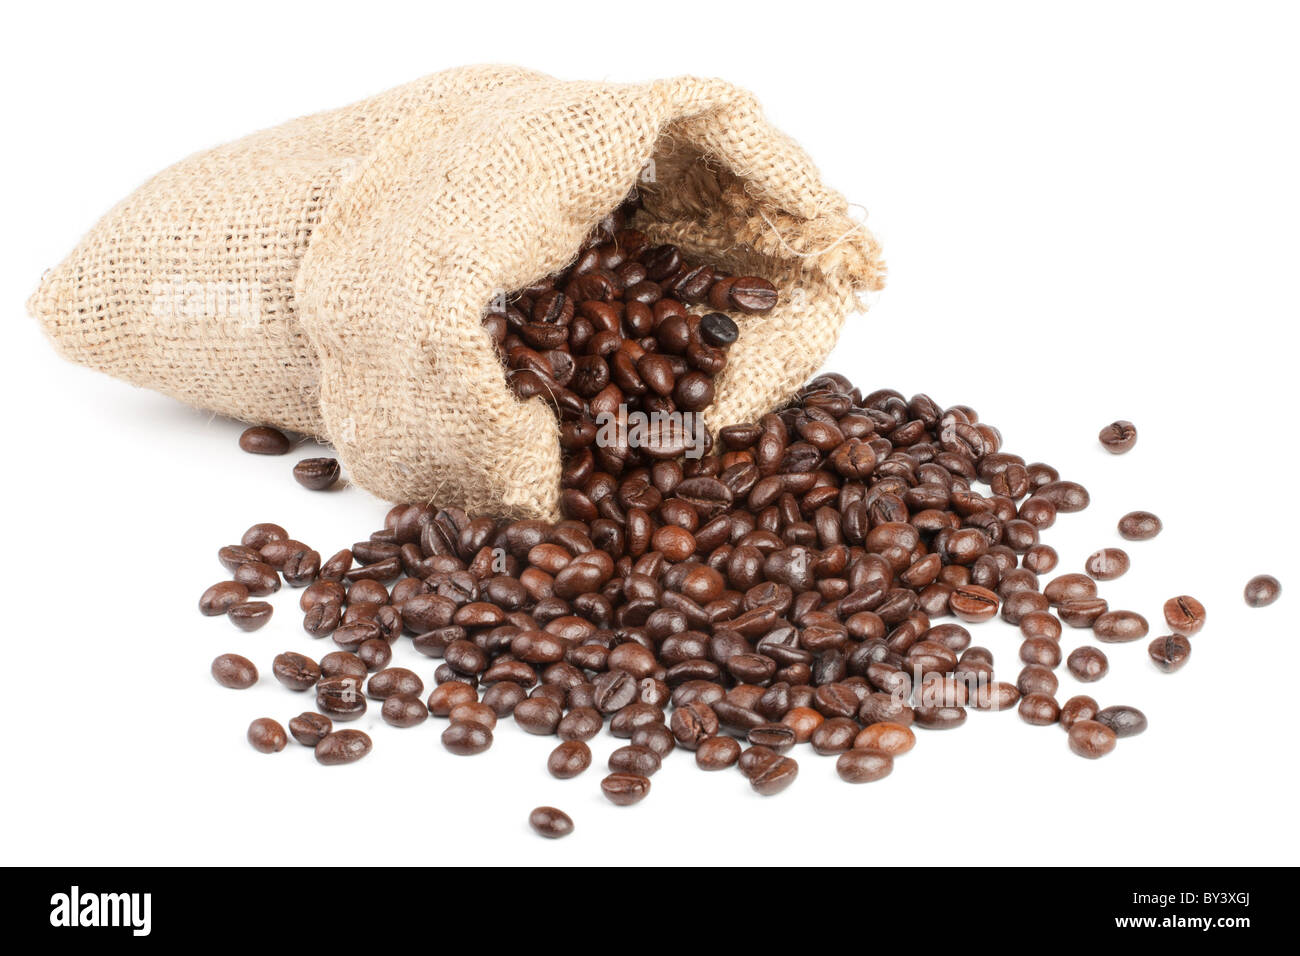 Coffee beans in canvas sack on white background - Stock Image